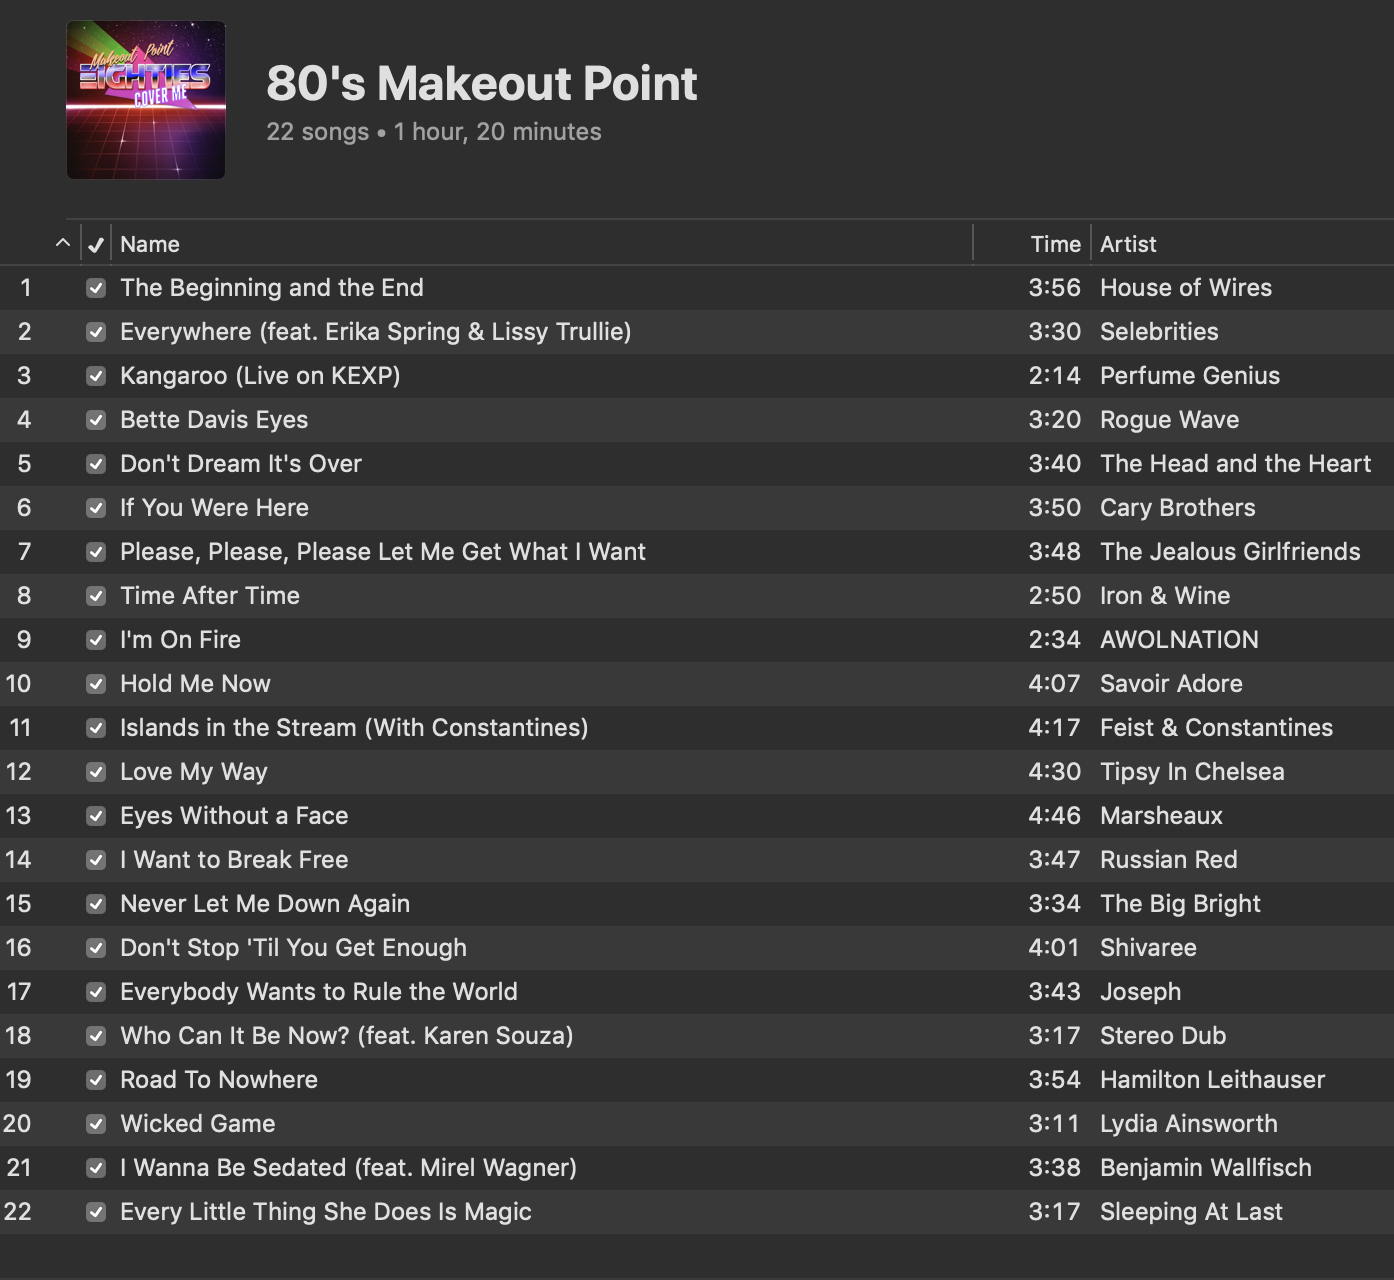 New Mix - Makeout Point 80's: Cover Me - The Pulsating Sac Of Sound